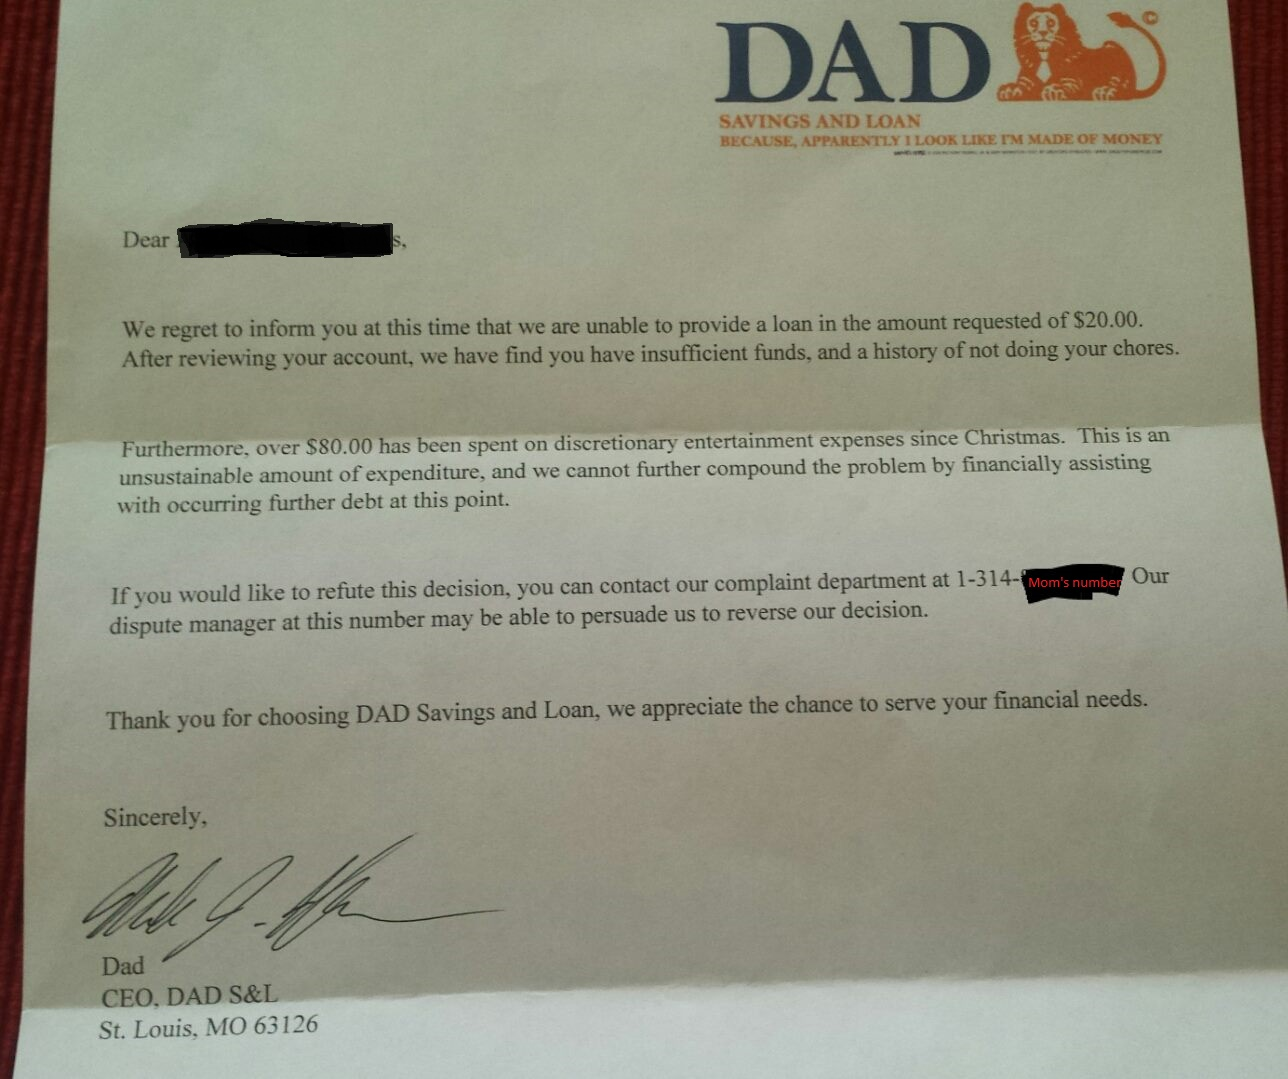 A letter looking like it came from a bank directed to the dad's child